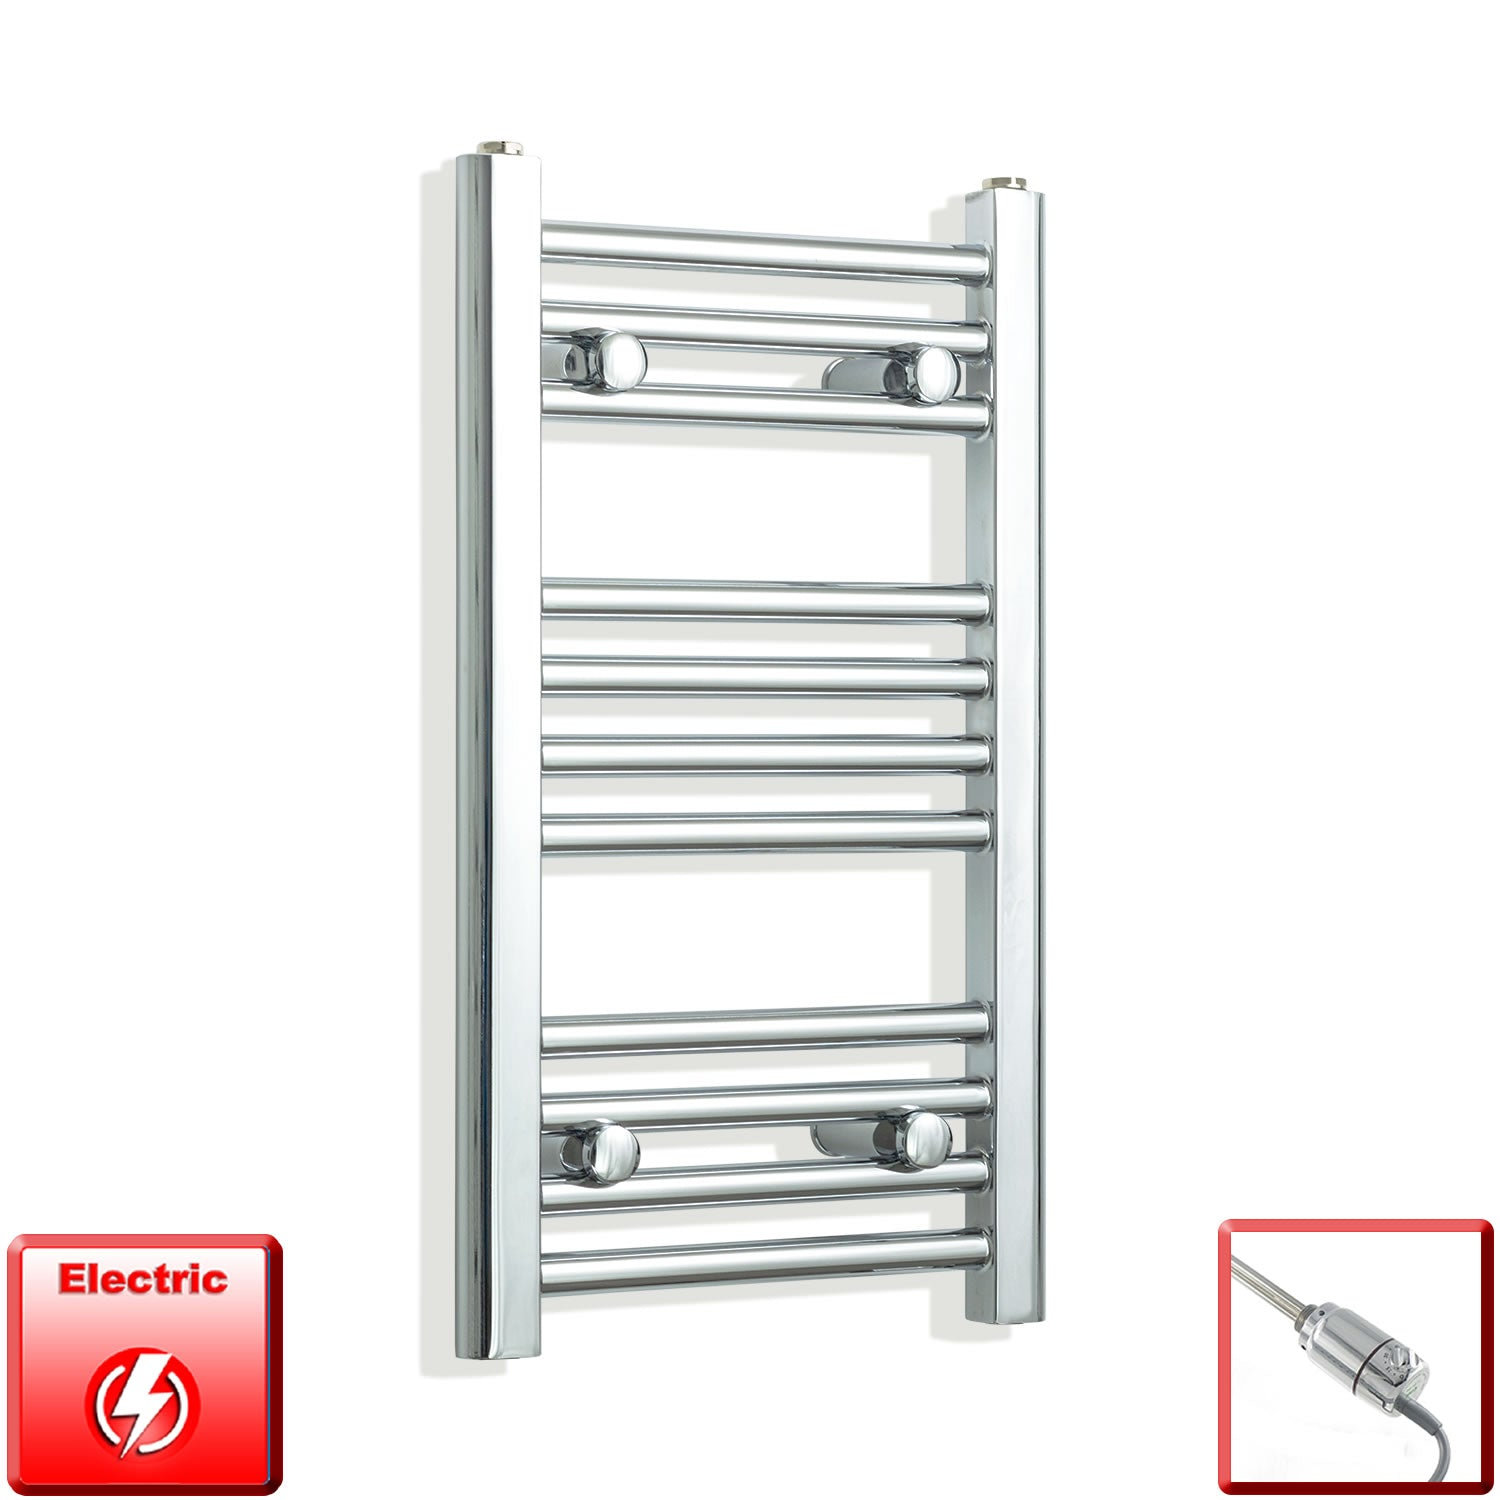 350mm Wide 600mm High Pre-Filled Chrome Electric Towel Rail Radiator With Thermostatic GT Element